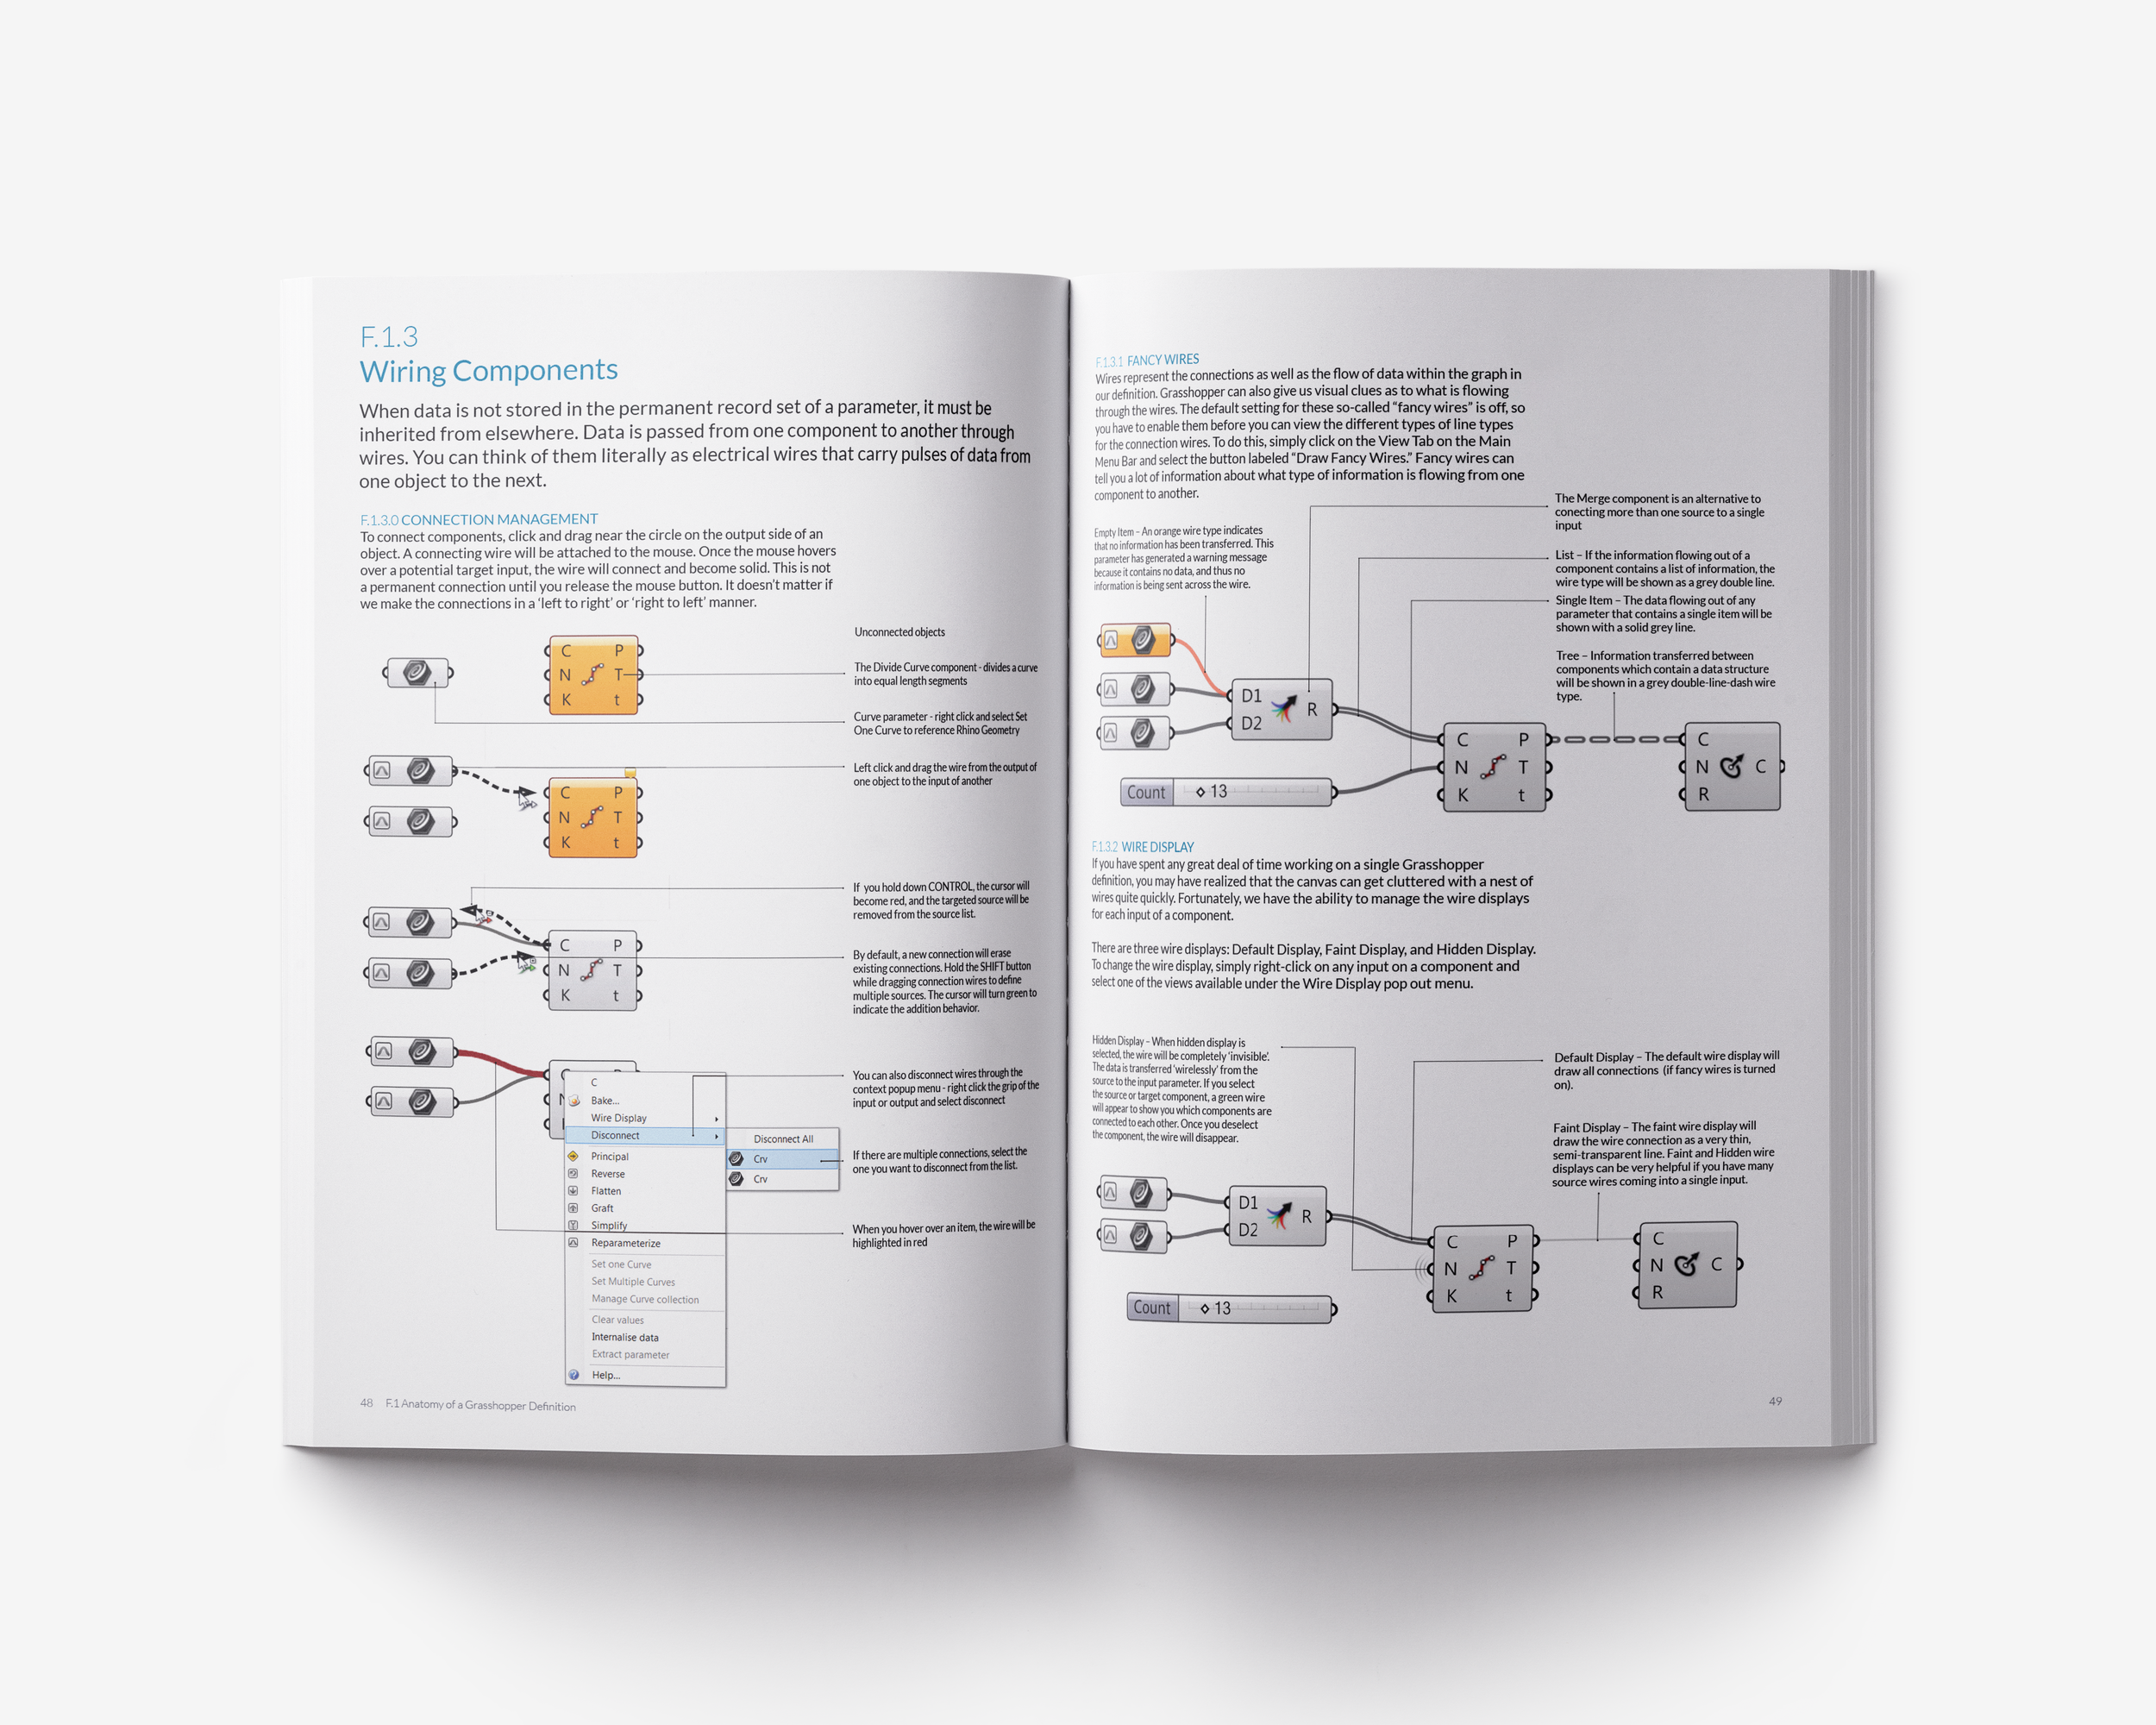 Robust 3-D development. - Read the Grasshopper Primer online or download a PDF version to get up and running with the world's most robust visual programming platform.